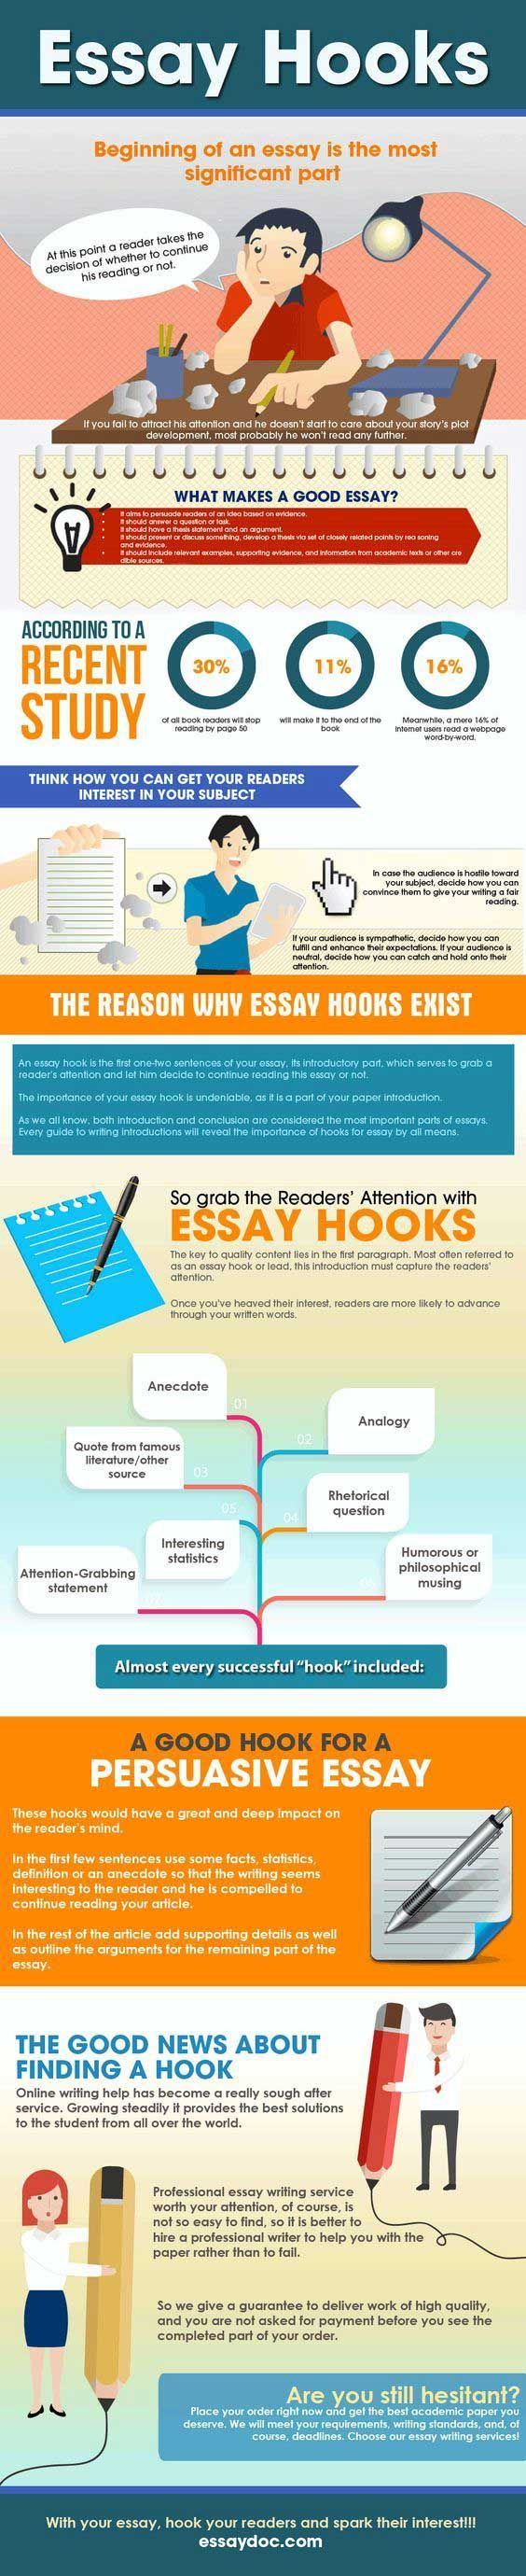 Compare And Contrast Essay Examples High School  Infographics That Will Teach You How To Write An A Research Paper Or  Essay Compare And Contrast Essay Examples For High School also English Essays For Students Best  Write My Research Paper Ideas On Pinterest  College  Essays For High School Students